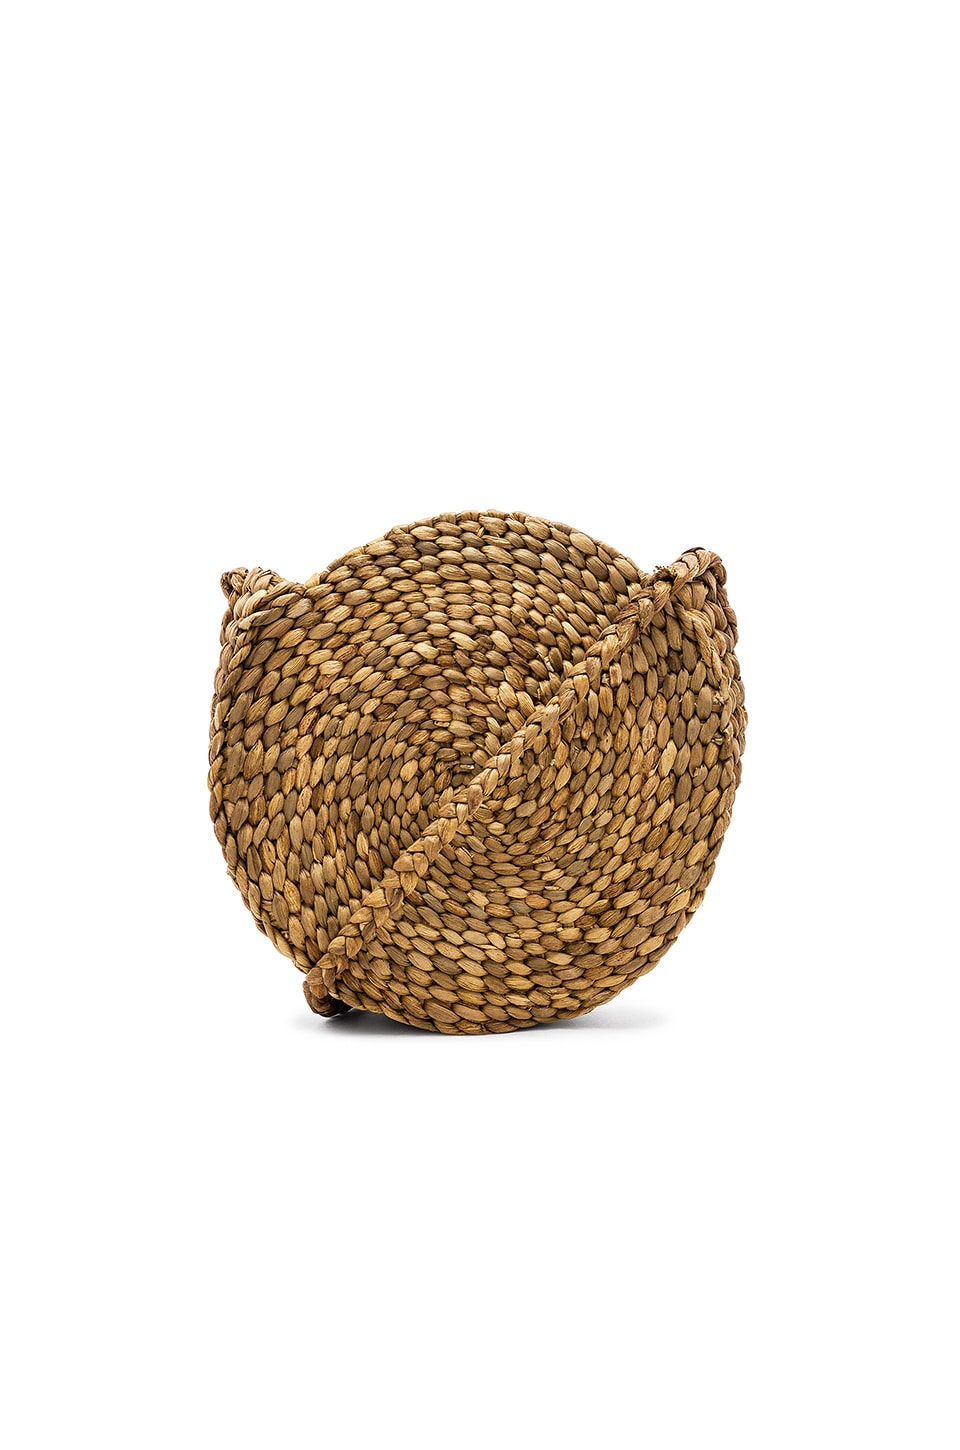 ELLEN & JAMES Paros Round Bag in Tan